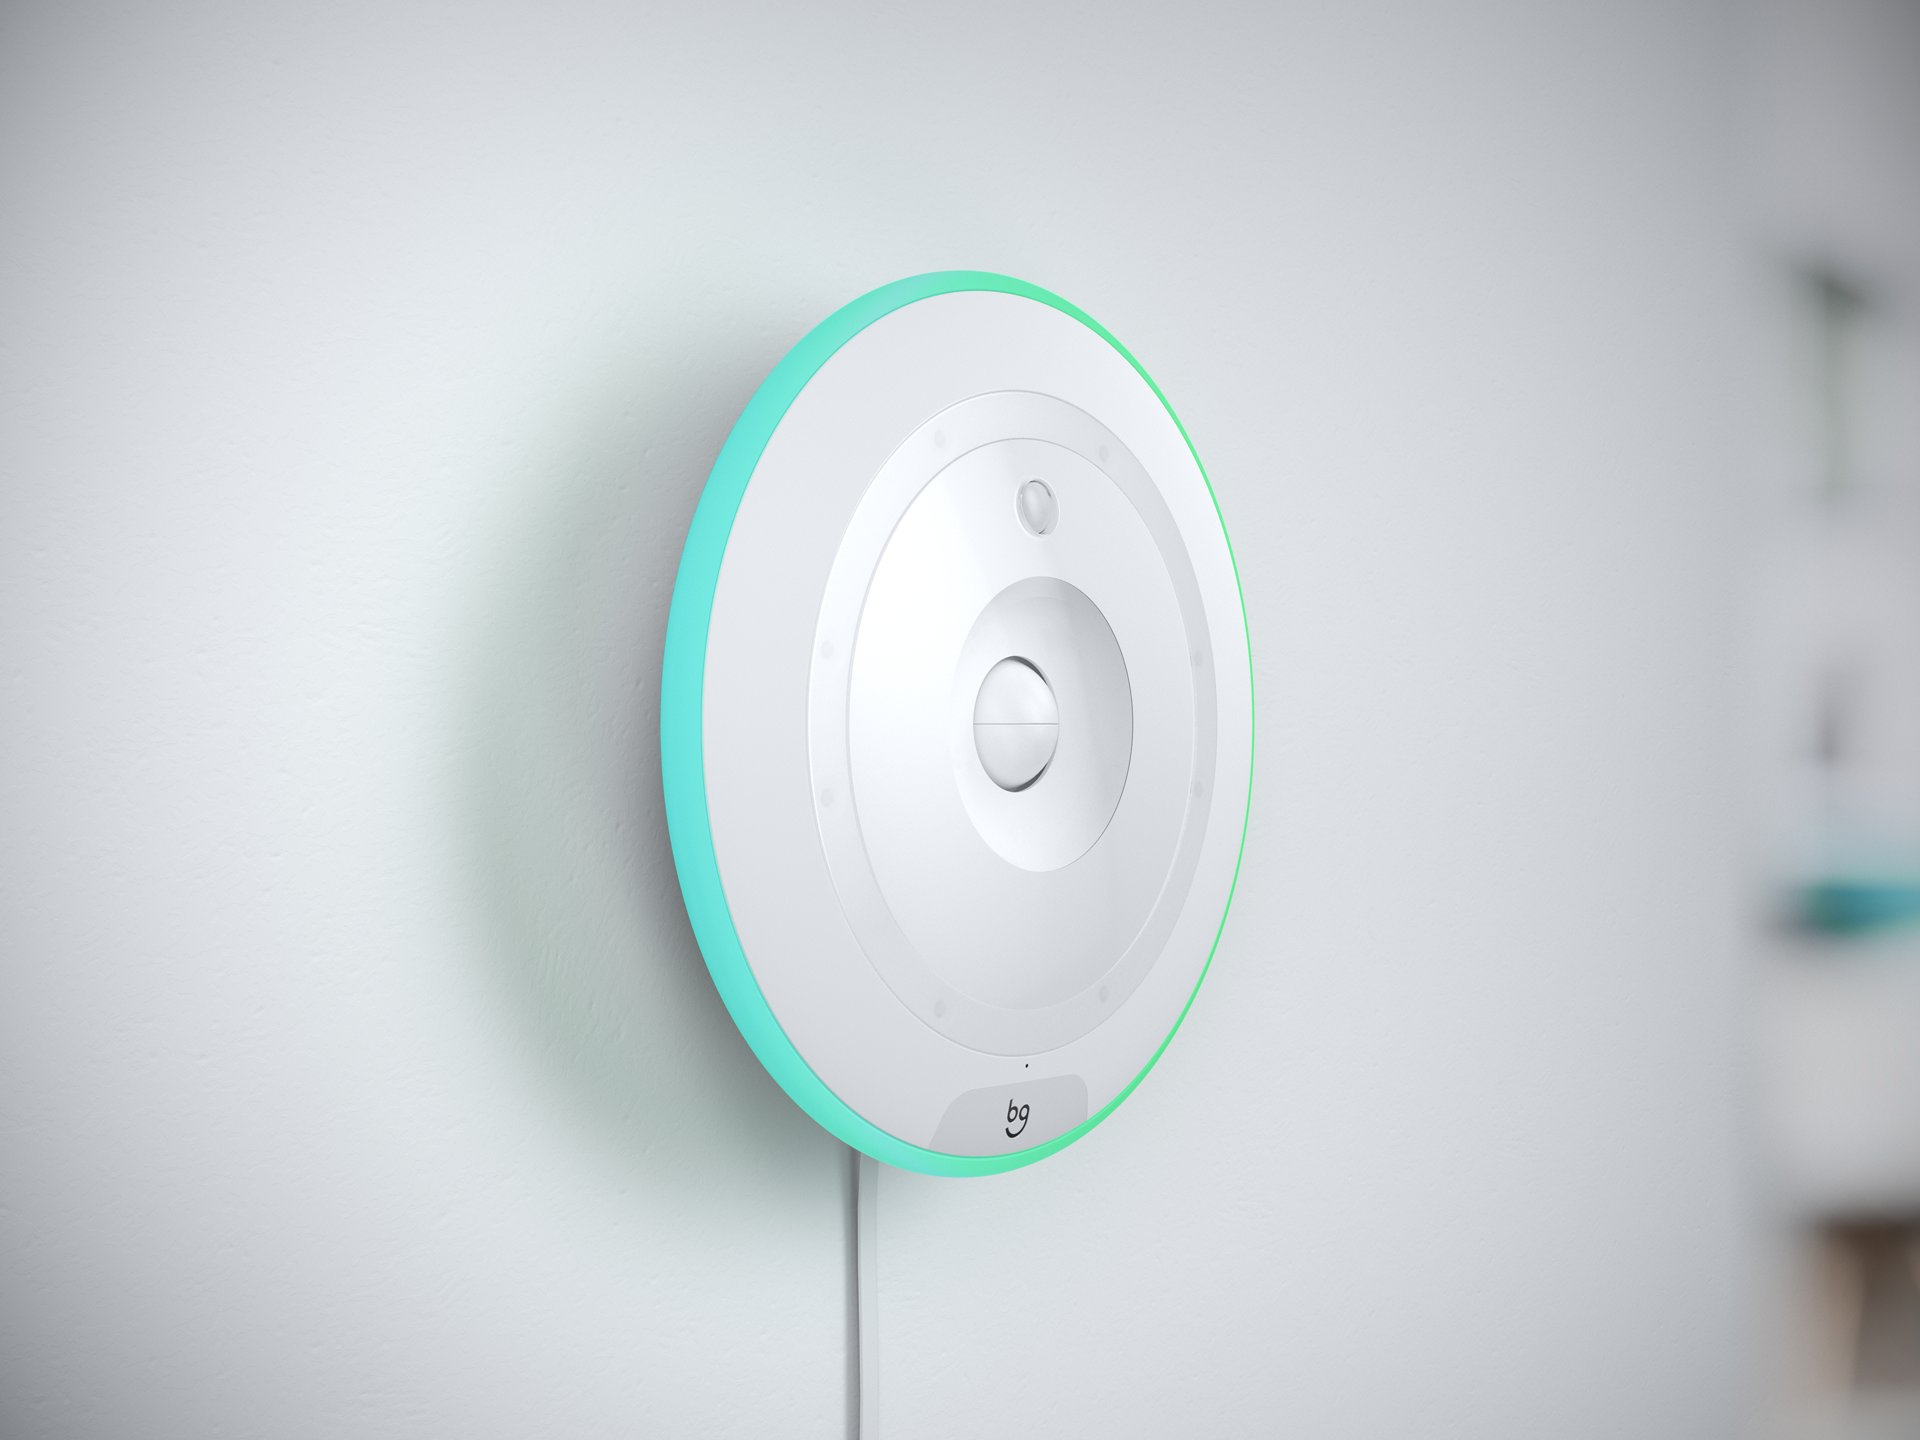 BuddyGuard raises €3.4M for its home security camera powered by AI